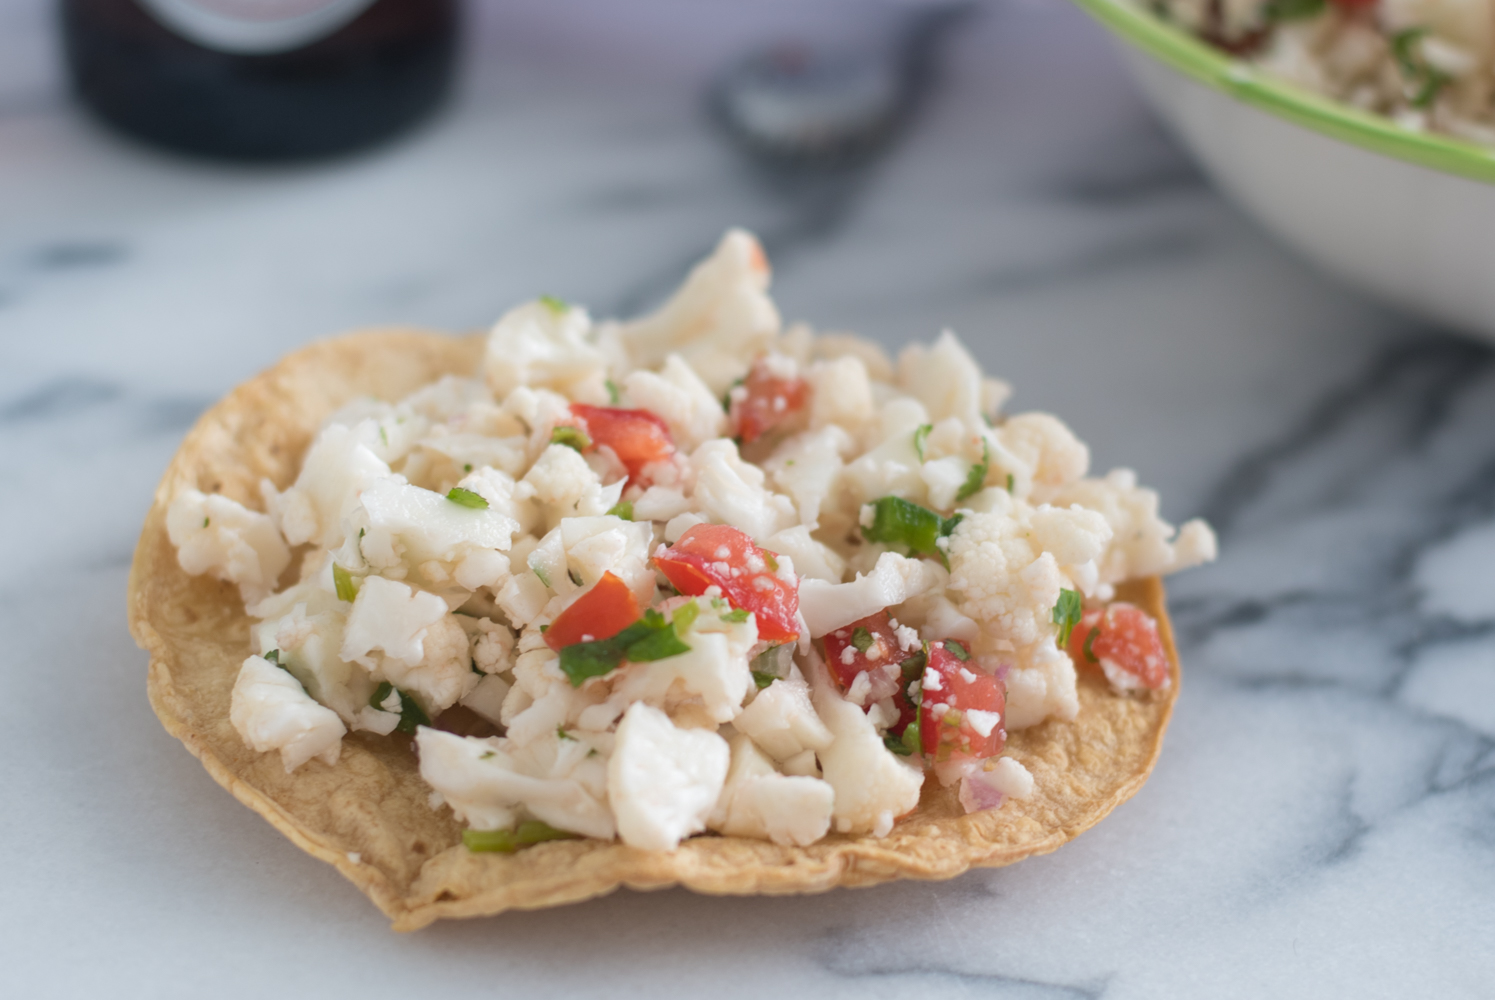 Healthy Mexican Cauliflower Ceviche